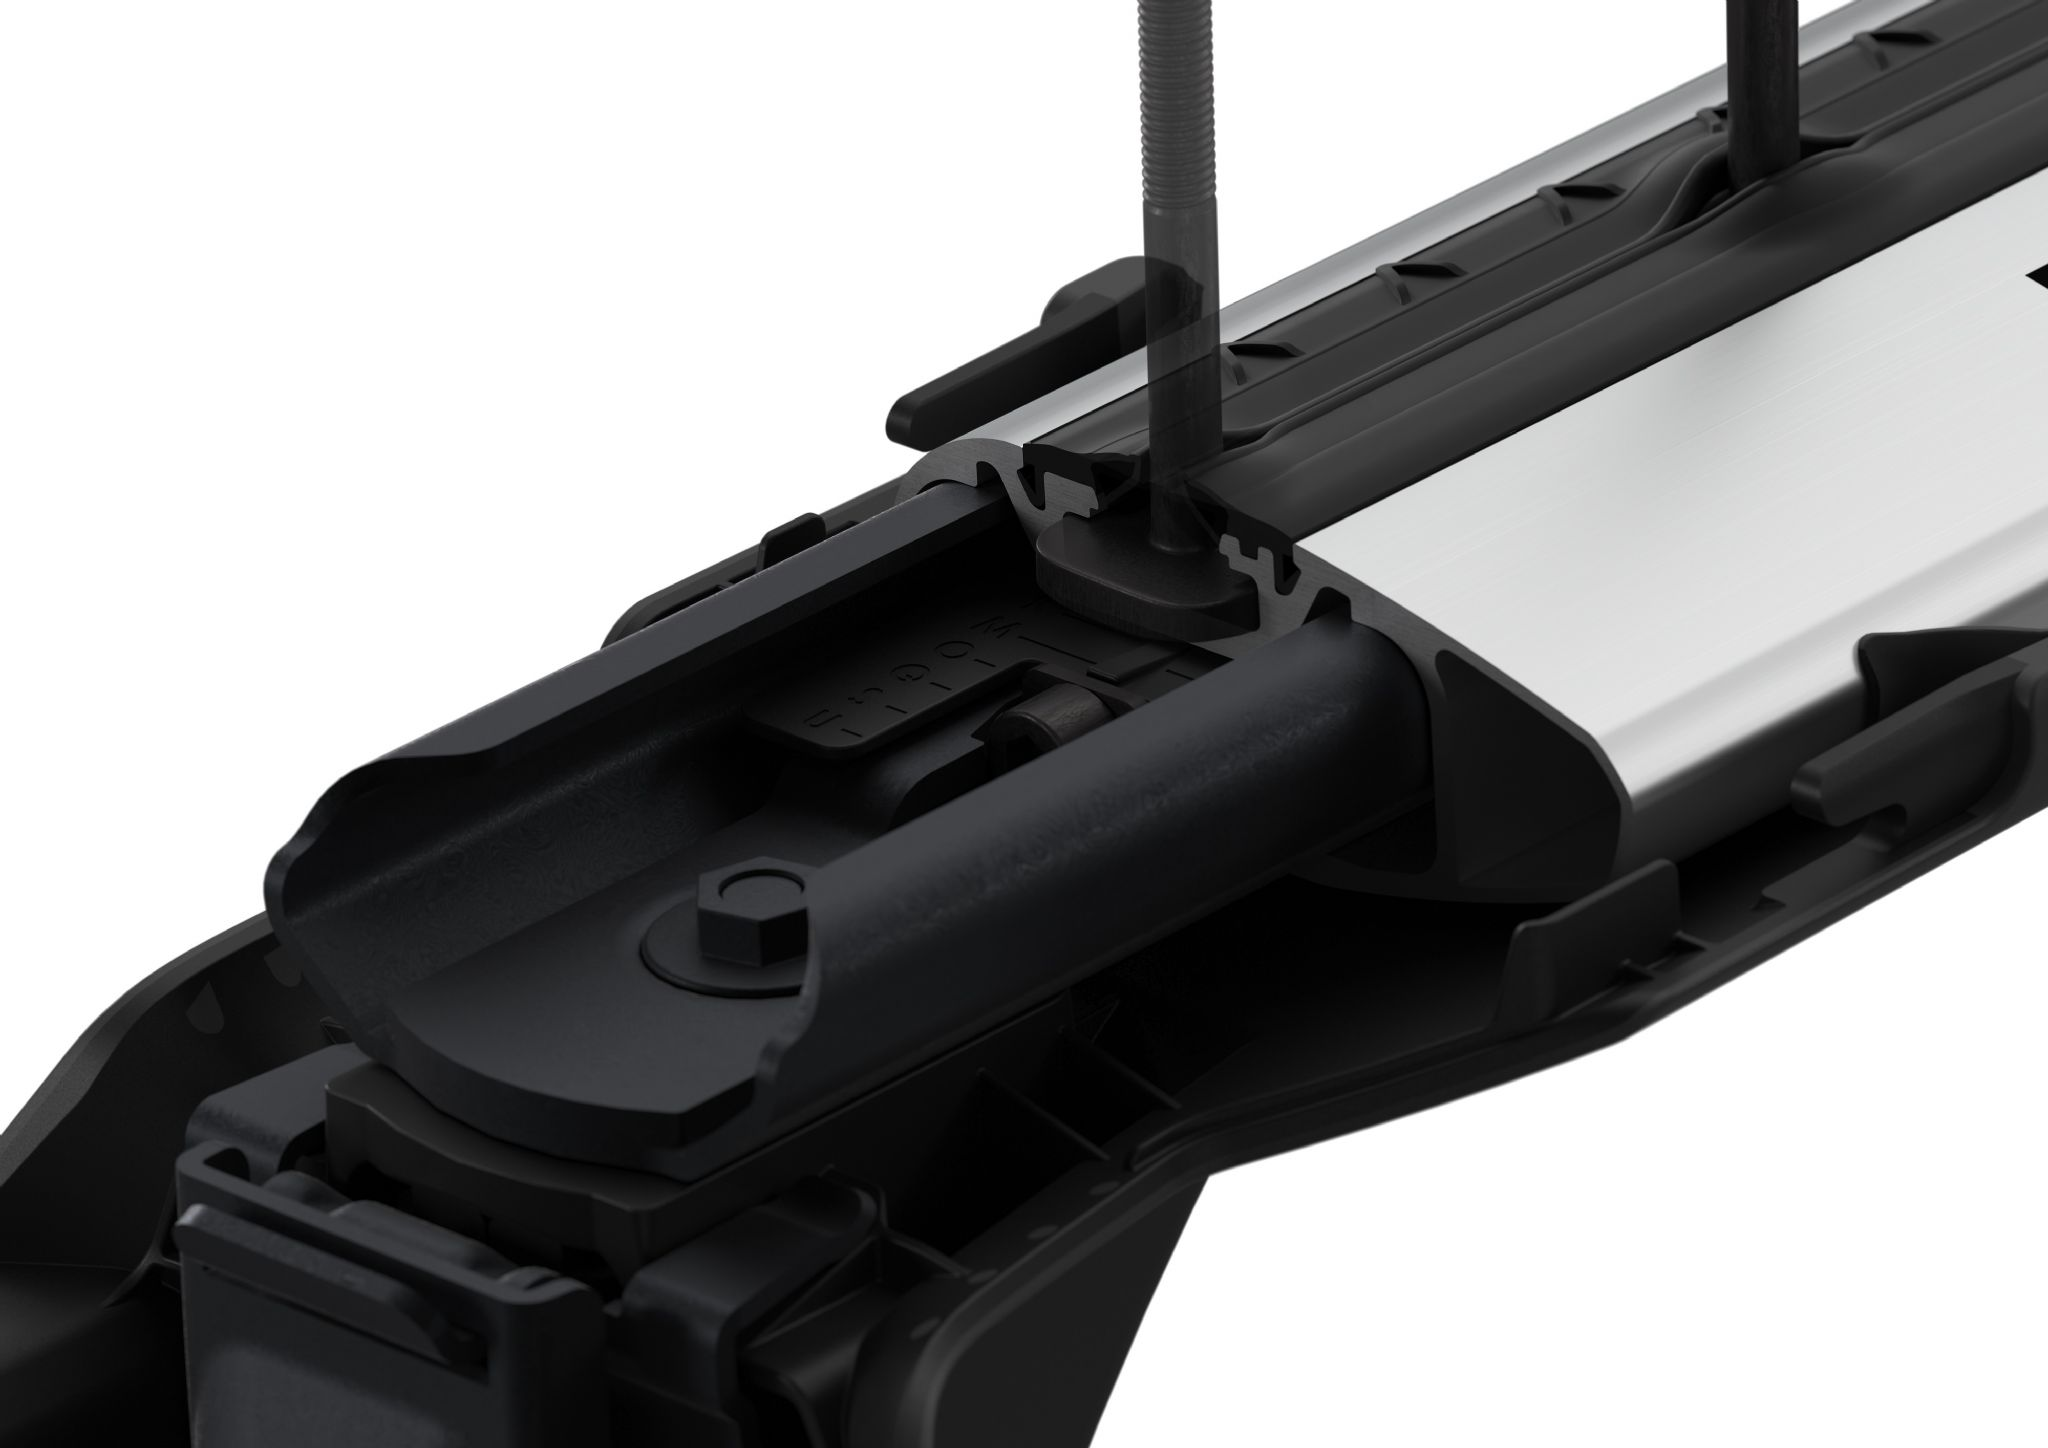 Thule Aero WingBars Roof Rack BarsFord Galaxy 2010-2015 Flush Rails